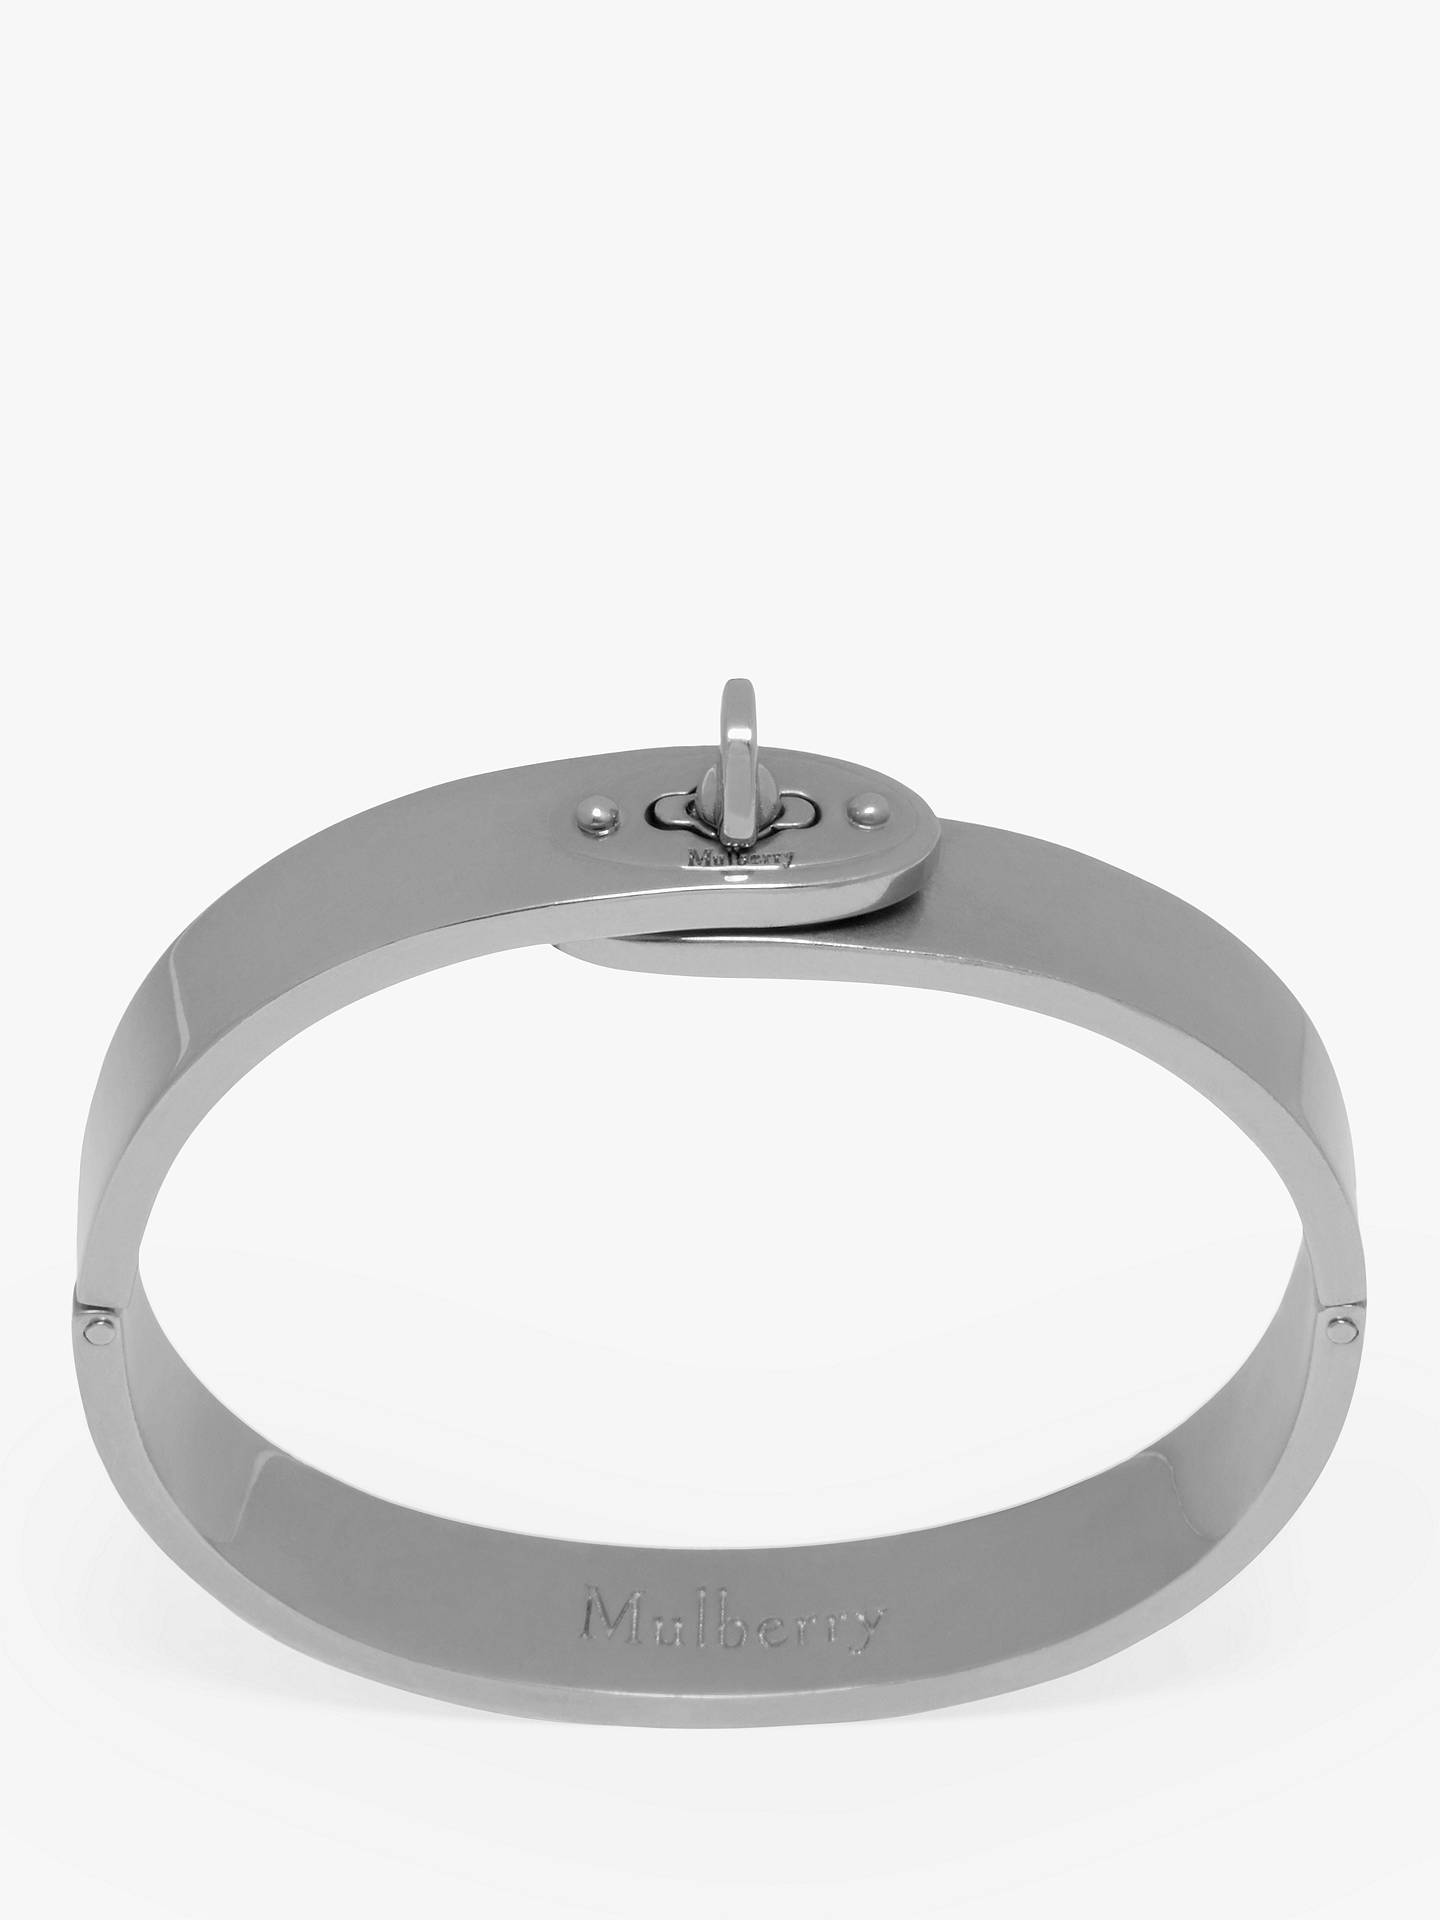 BuyMulberry Bayswater Slim Metal Bangle, Silver Online at johnlewis.com